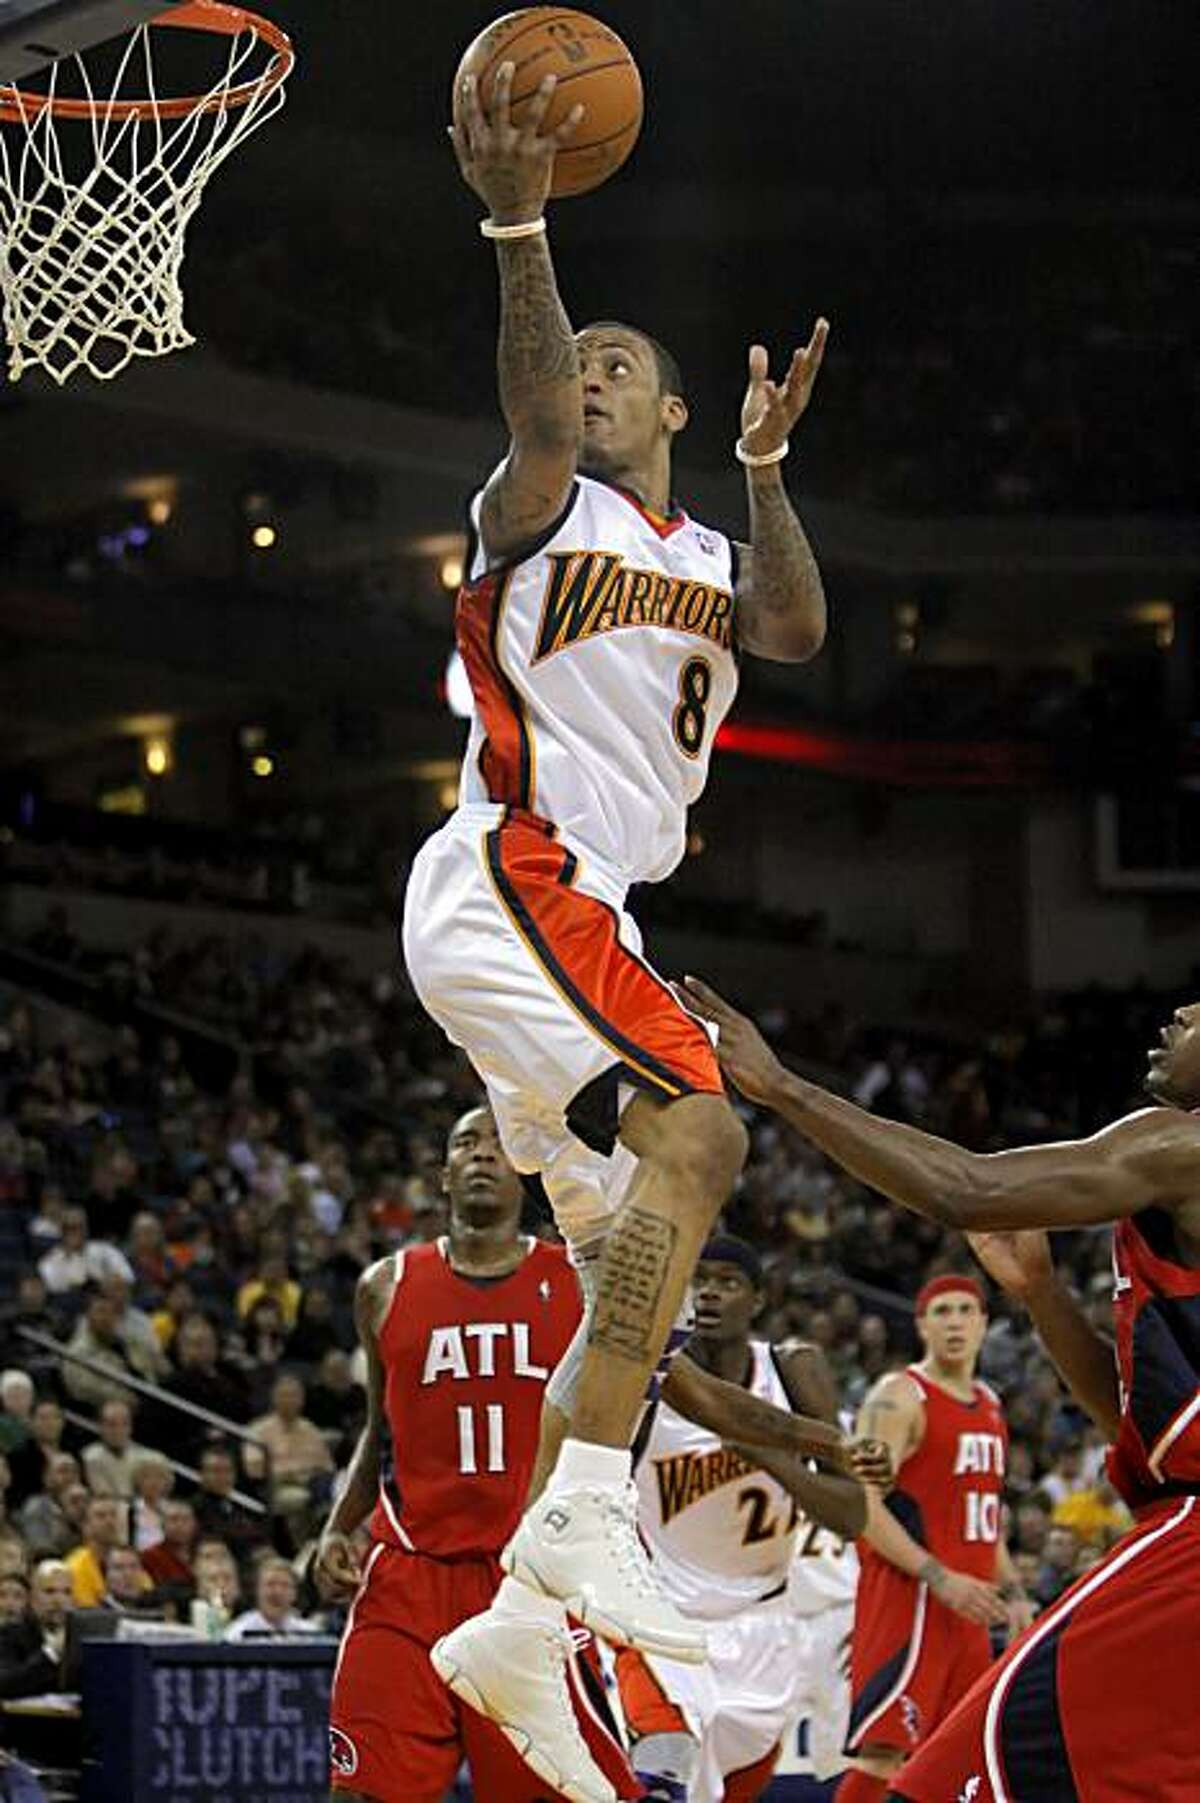 Monta Ellis puts up a shot in the first half of the Warriors' game against the Atlanta Hawks at Oracle Arena in Oakland on Sunday.